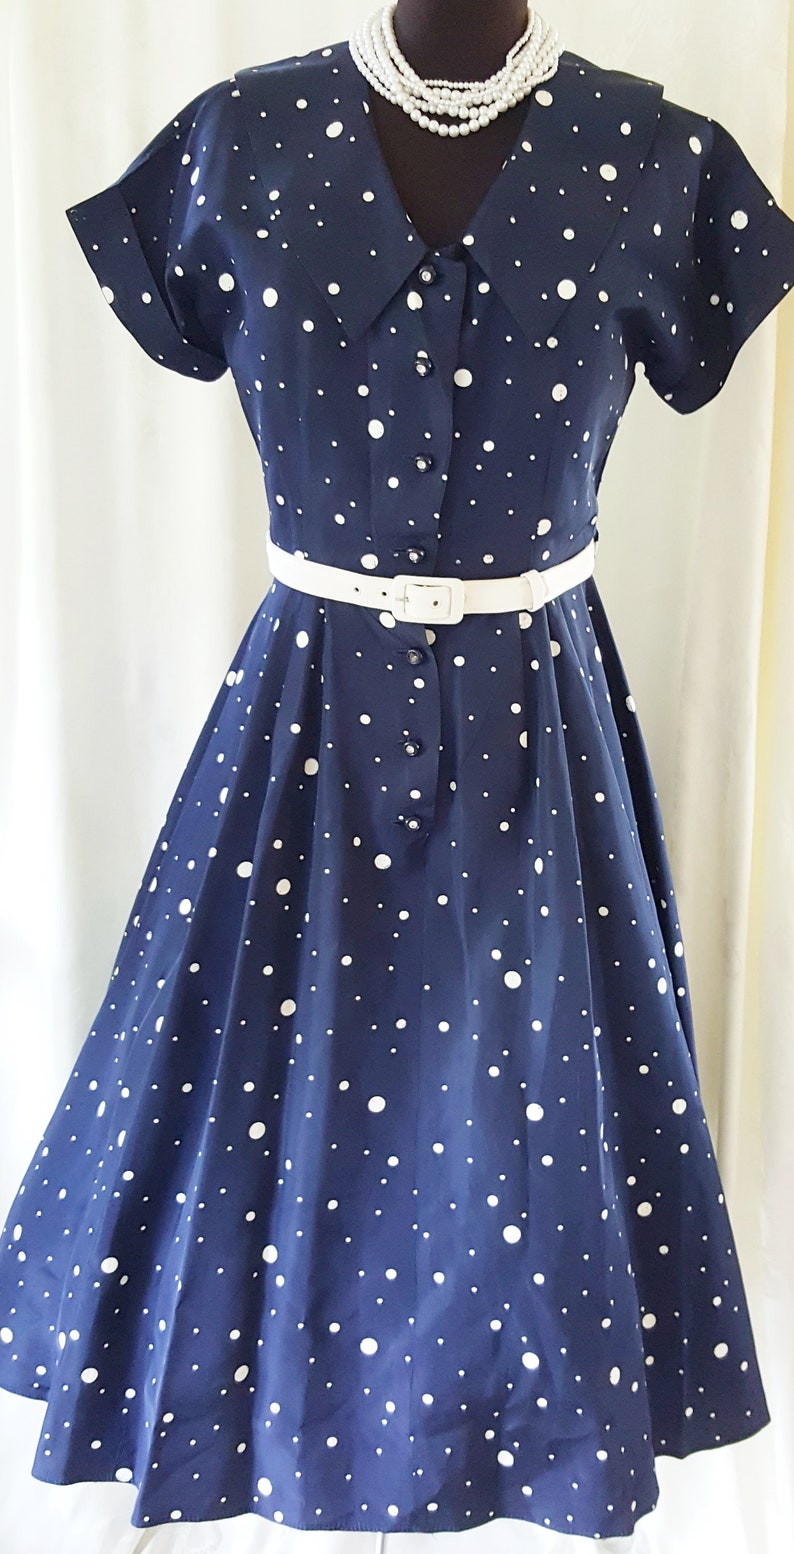 1950s Dresses, 50s Dresses | 1950s Style Dresses BUBBLY HAPPY Polka Dot Classic from the 1950s SophisticatedLaRue $88.00 AT vintagedancer.com